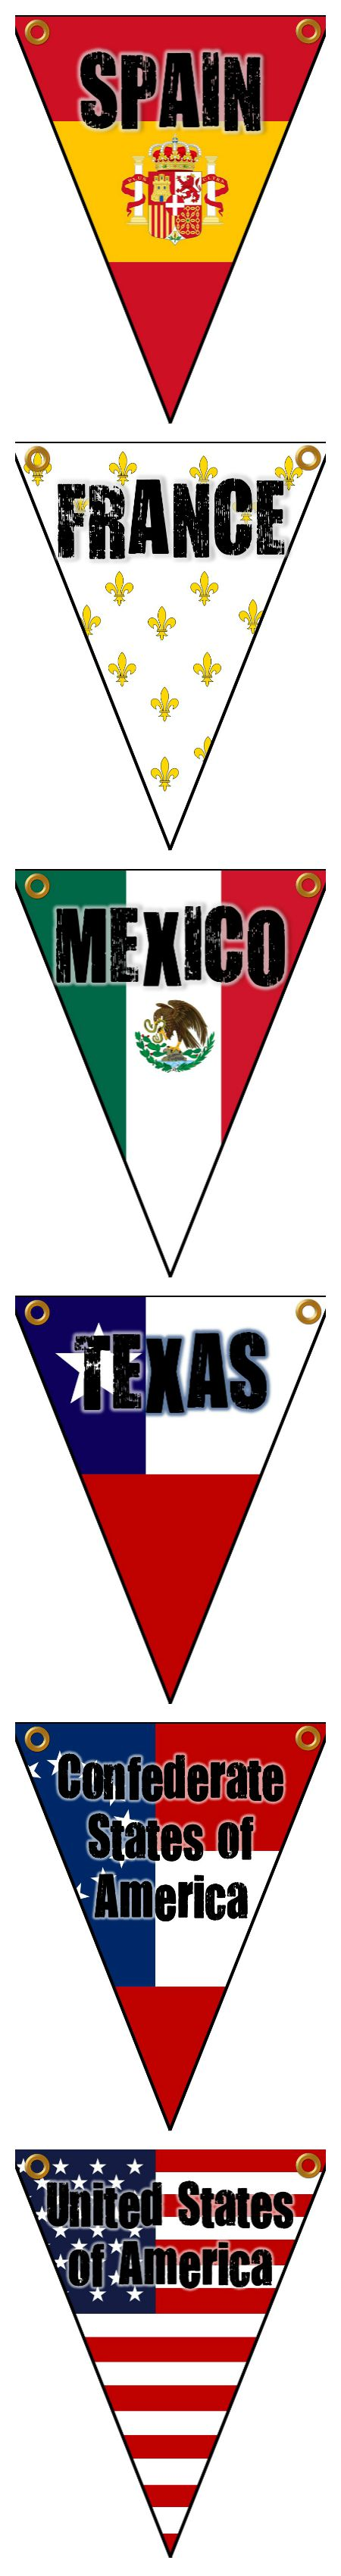 Six Flags Over Texas Banners Perfect Decor For Texas History Class Texas History Classroom History Classroom History Classroom Decorations